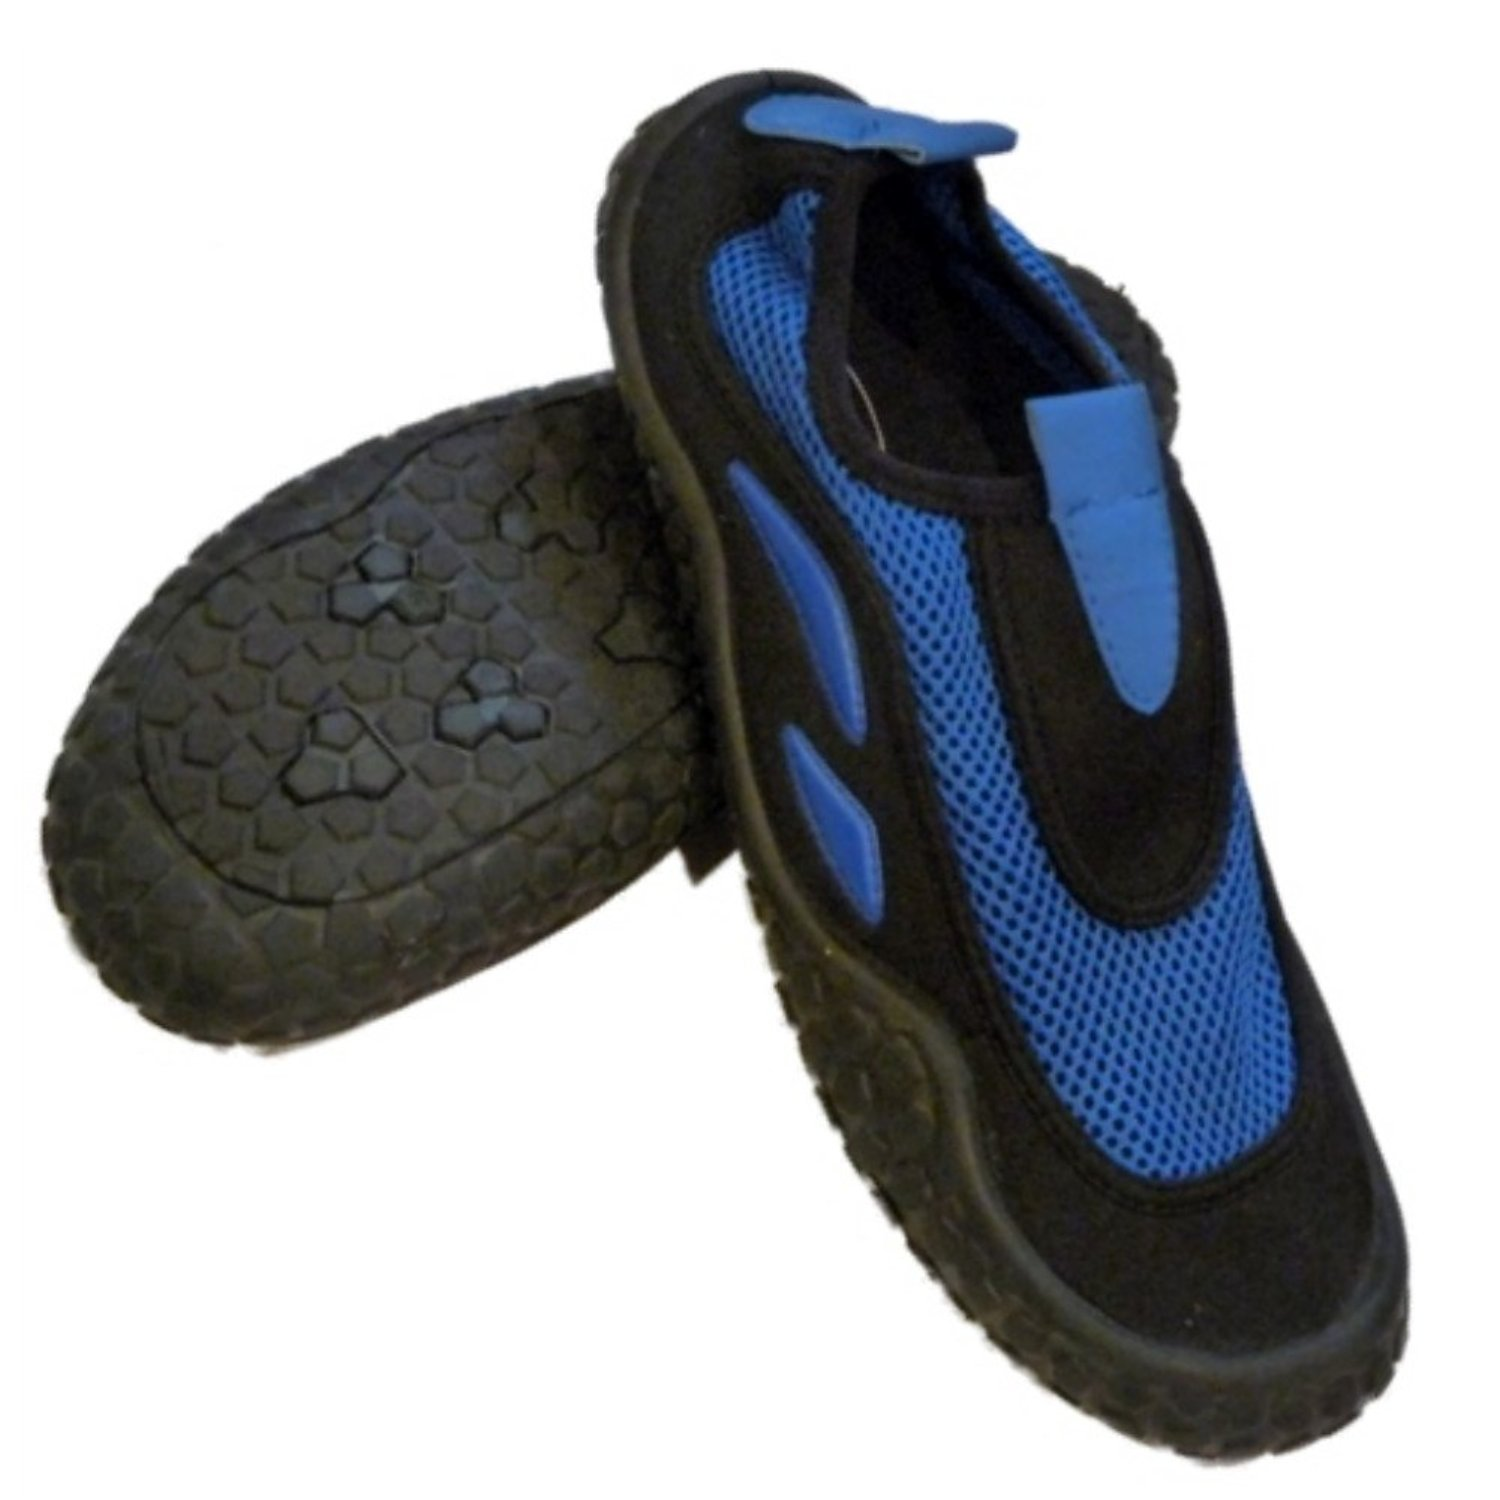 f94eb0509b095 Buy MENS SAND N SUN MESH WATER SHOES BLUE SIZE 9 NICE!! SAND AND SU ...